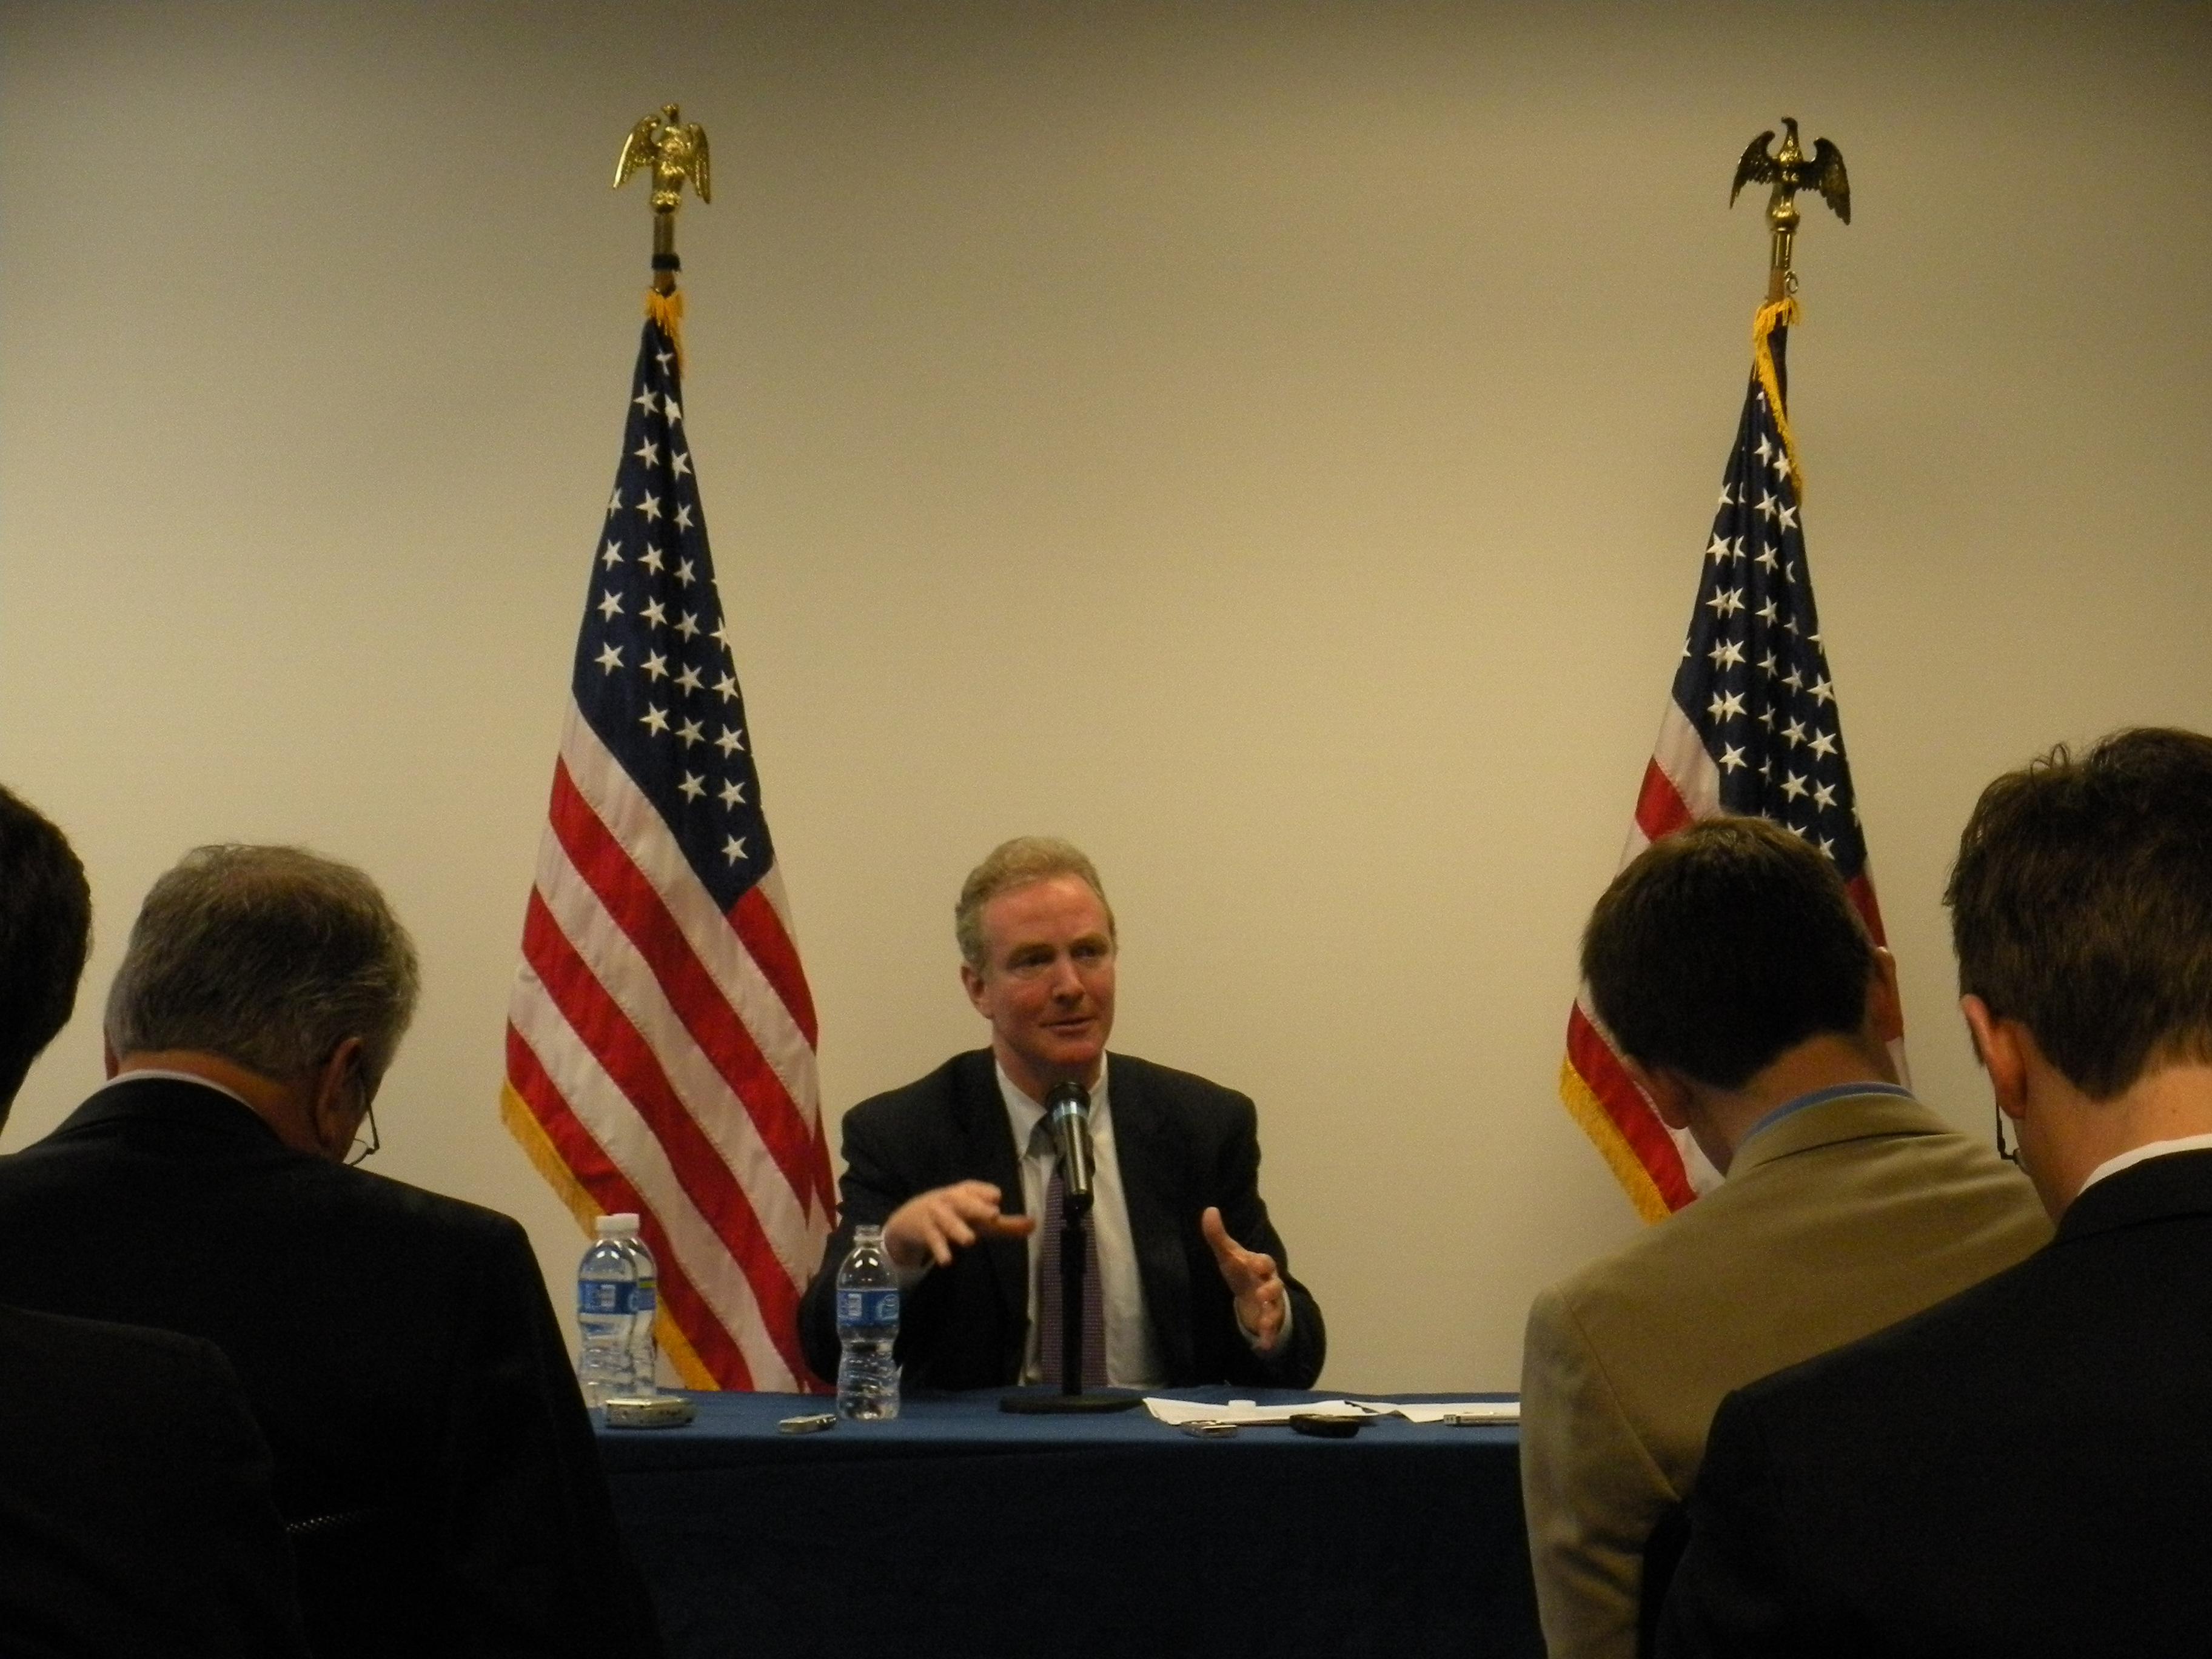 DCCC Chair Rep. Chris Van Hollen talks to reporters about Dem. win in Pennsylvania special election.